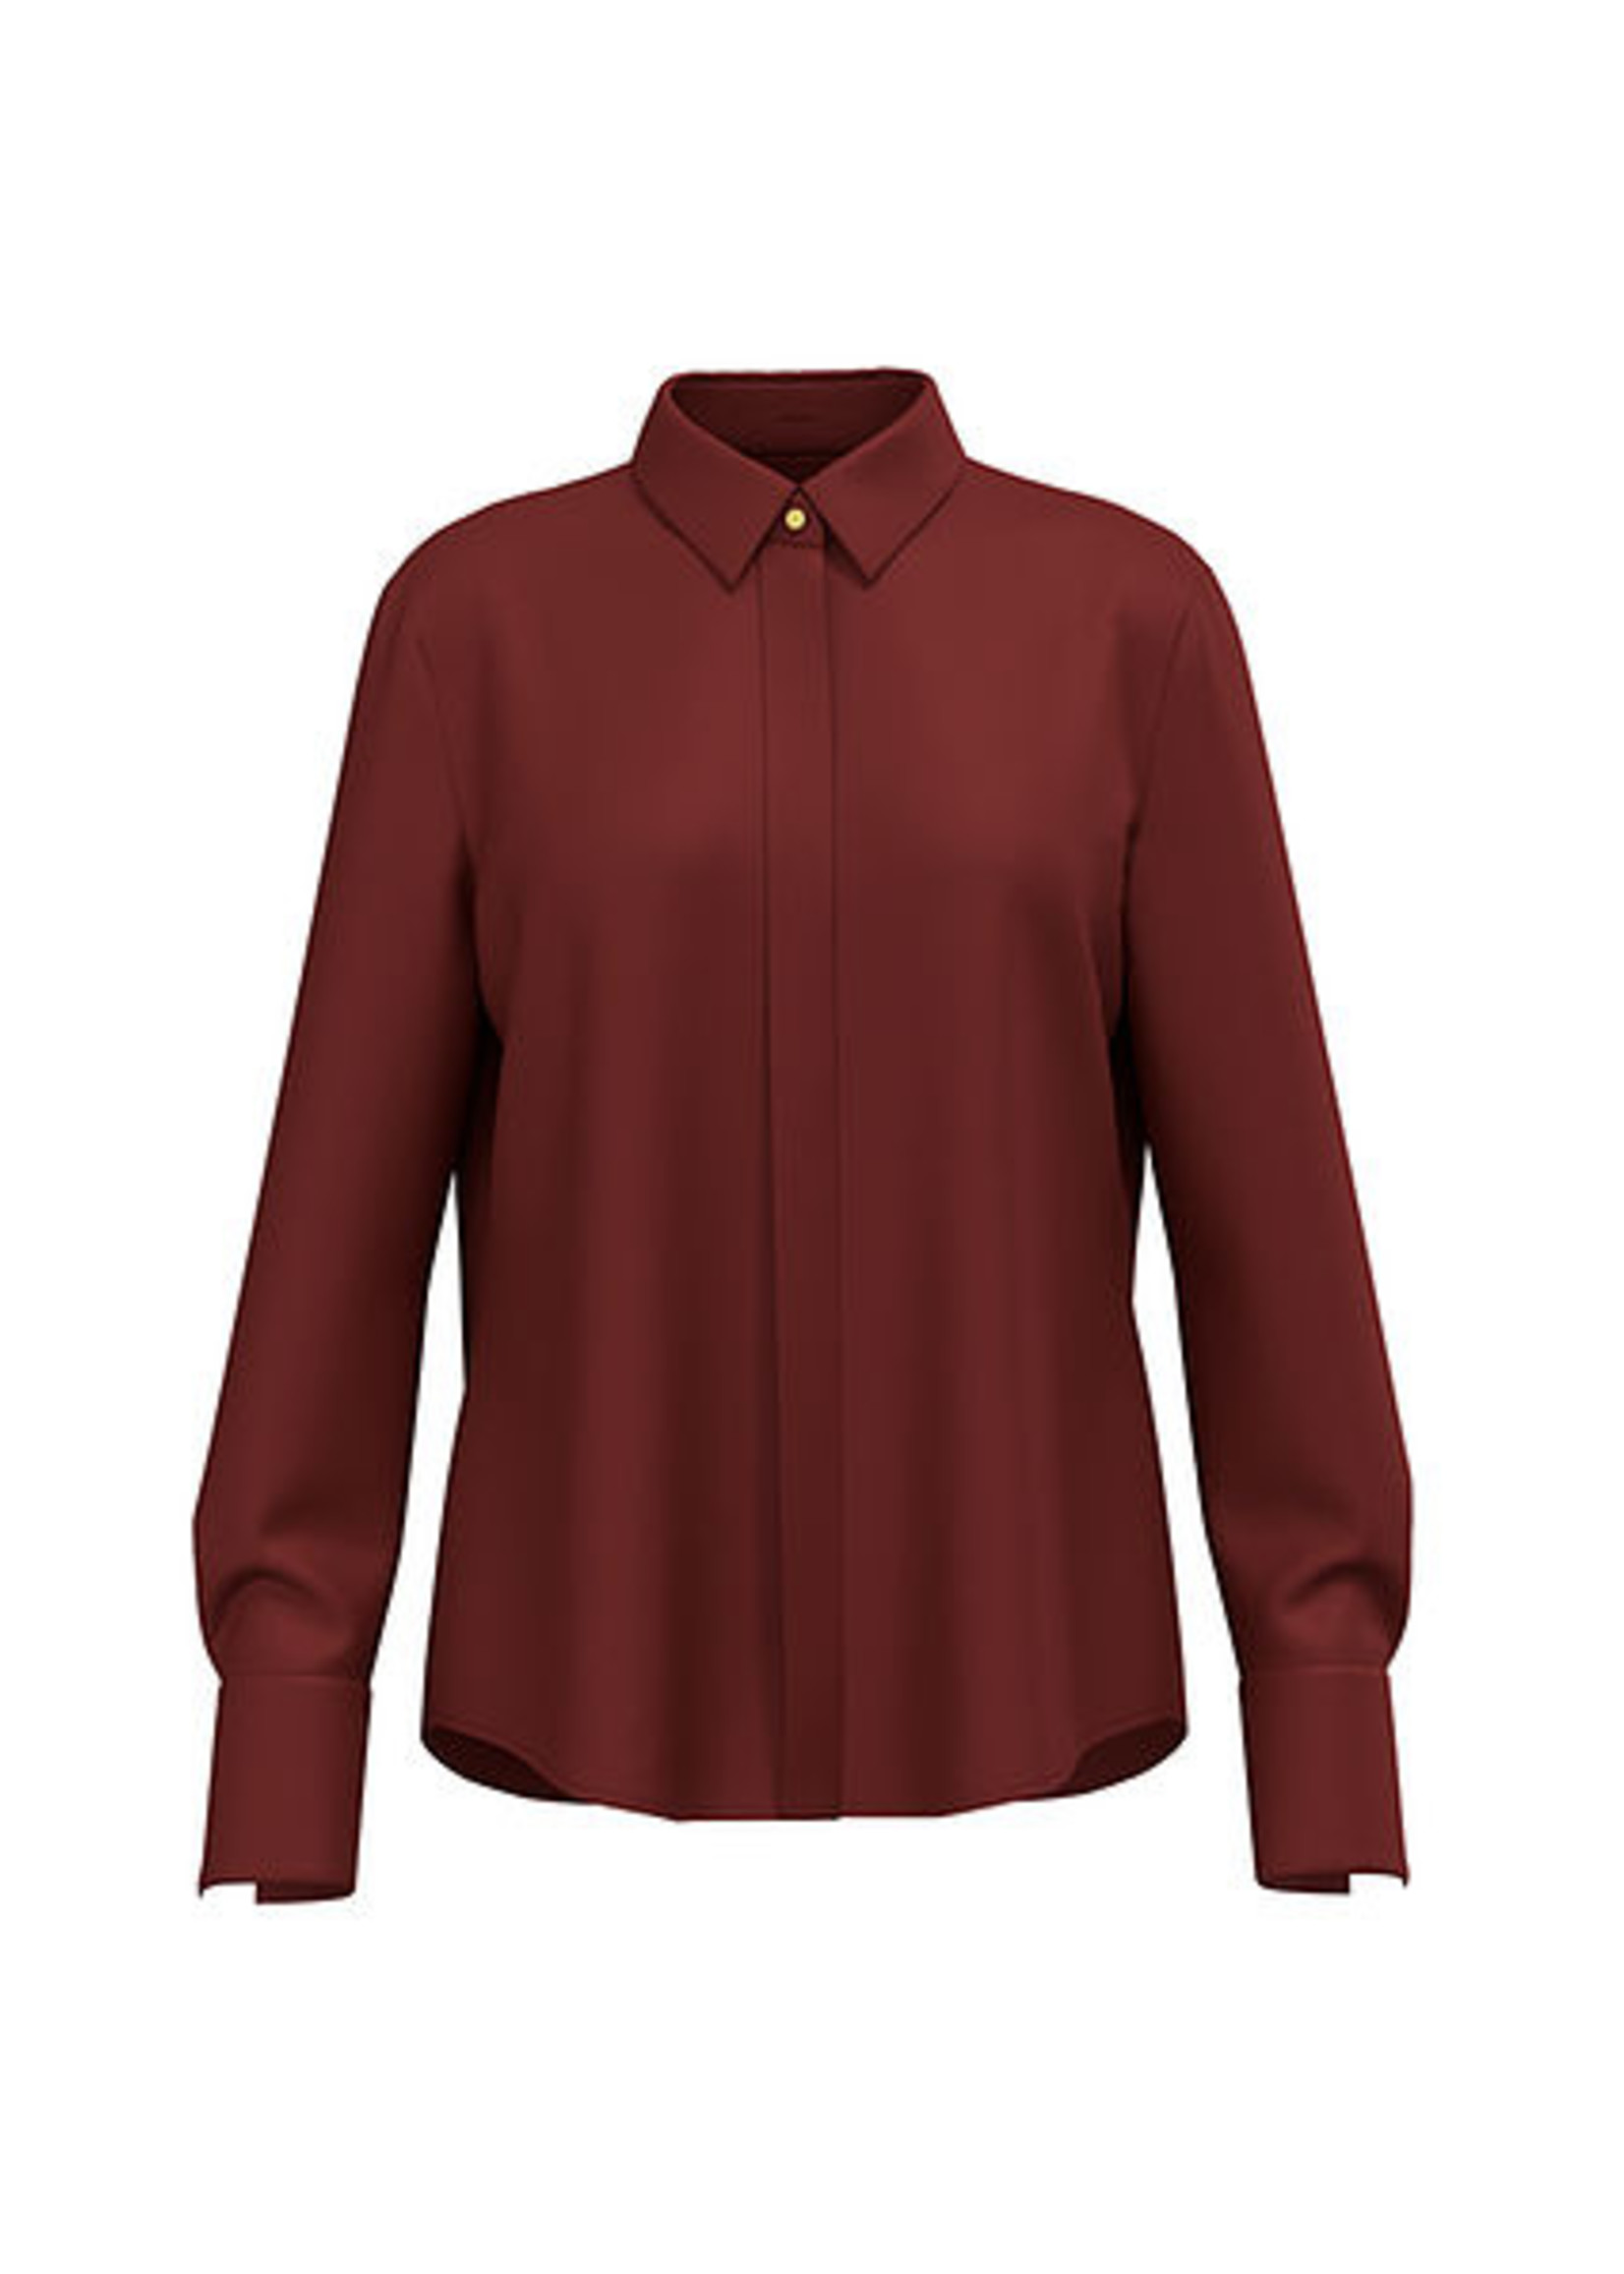 Blouse RC 51.08 W40 cocoa